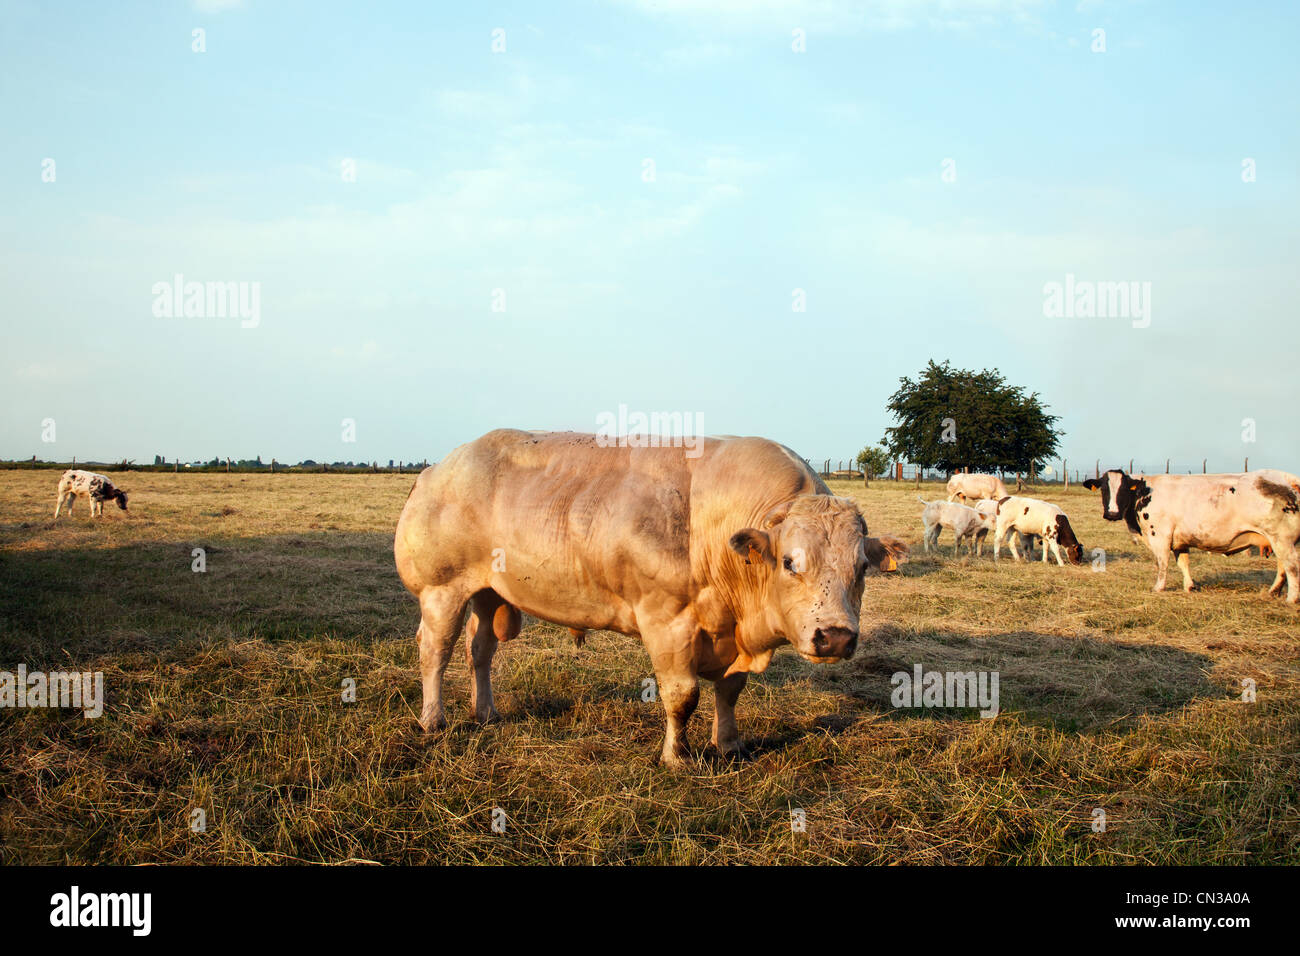 Bull in pasture - Stock Image